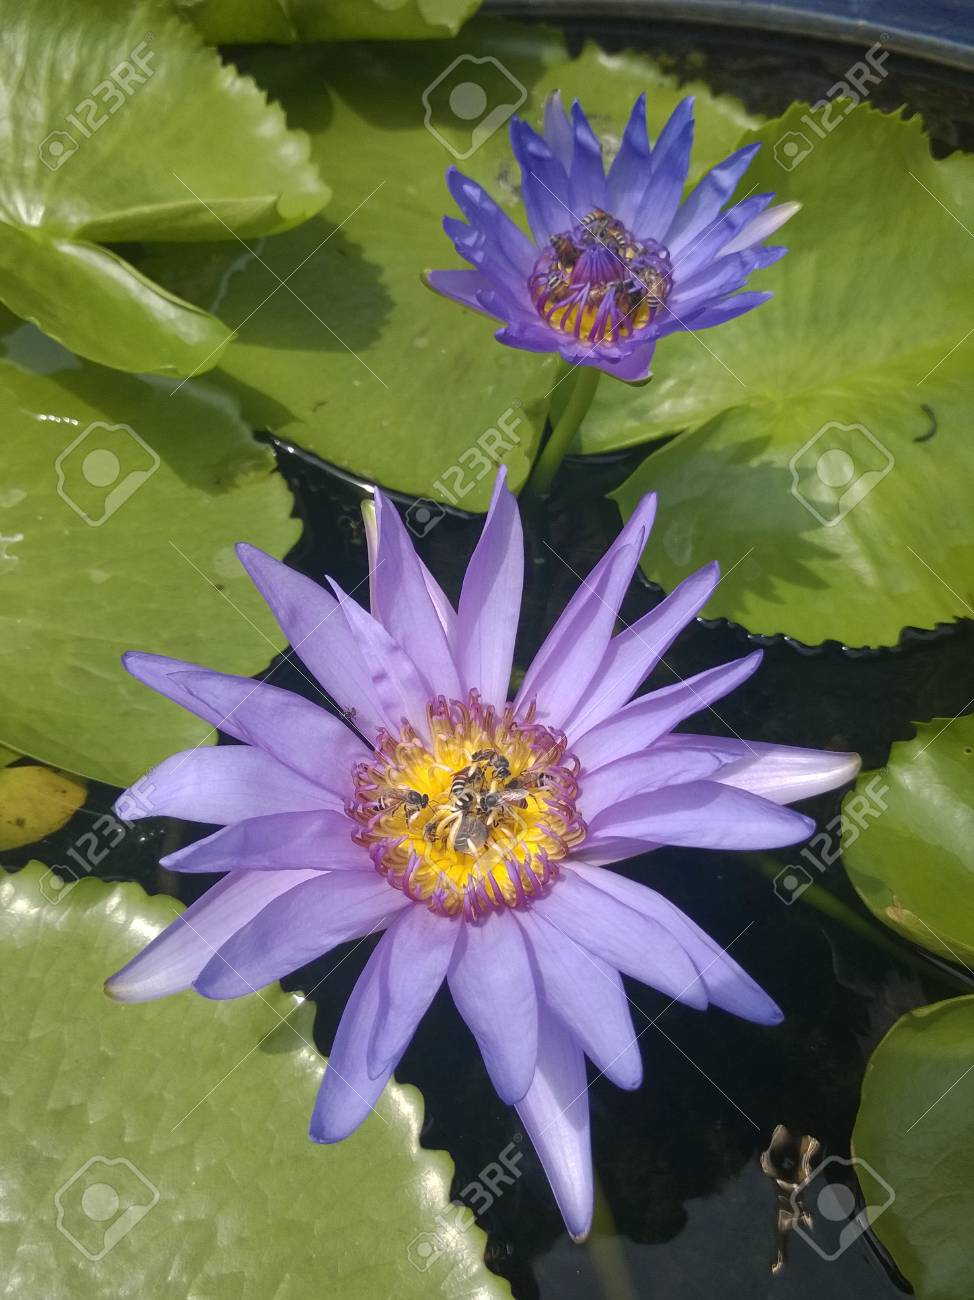 Bees On The Blue Lotus Flower Nelumbo Nucifera Bangkok Thailand